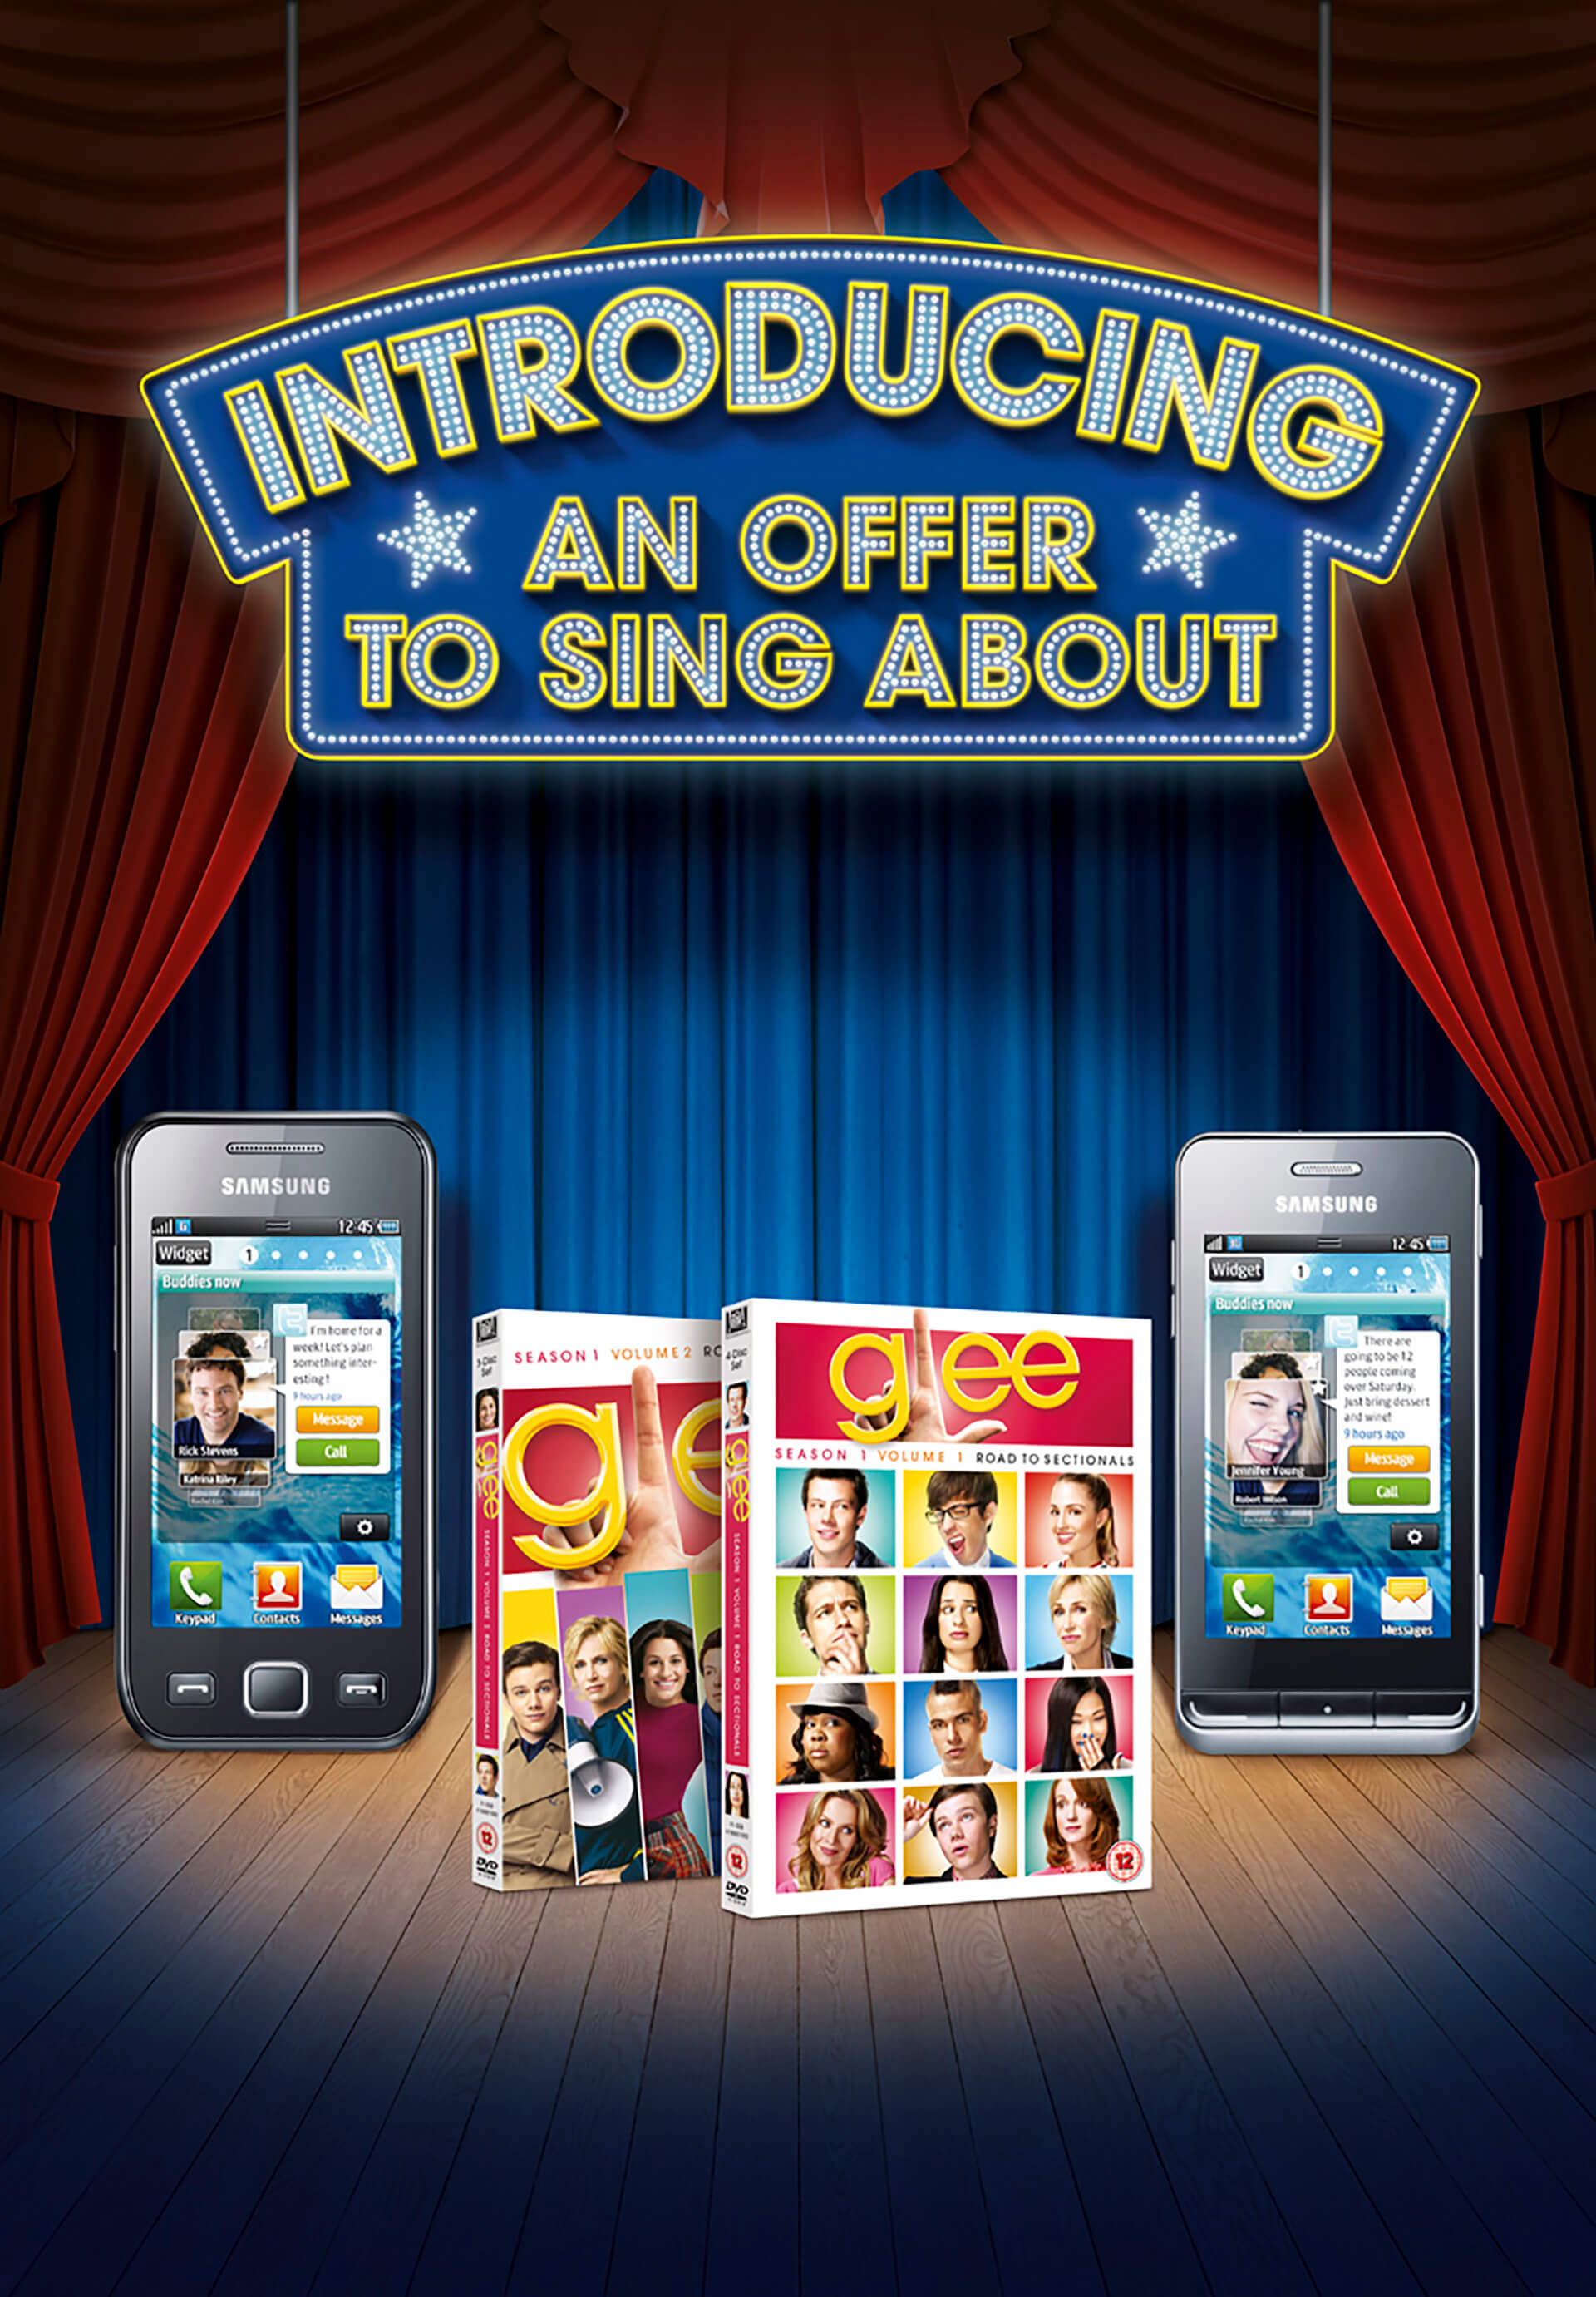 3d stage and cg text built and rendered in 3d package maya. Image created for O2 to promote the tv show Glee